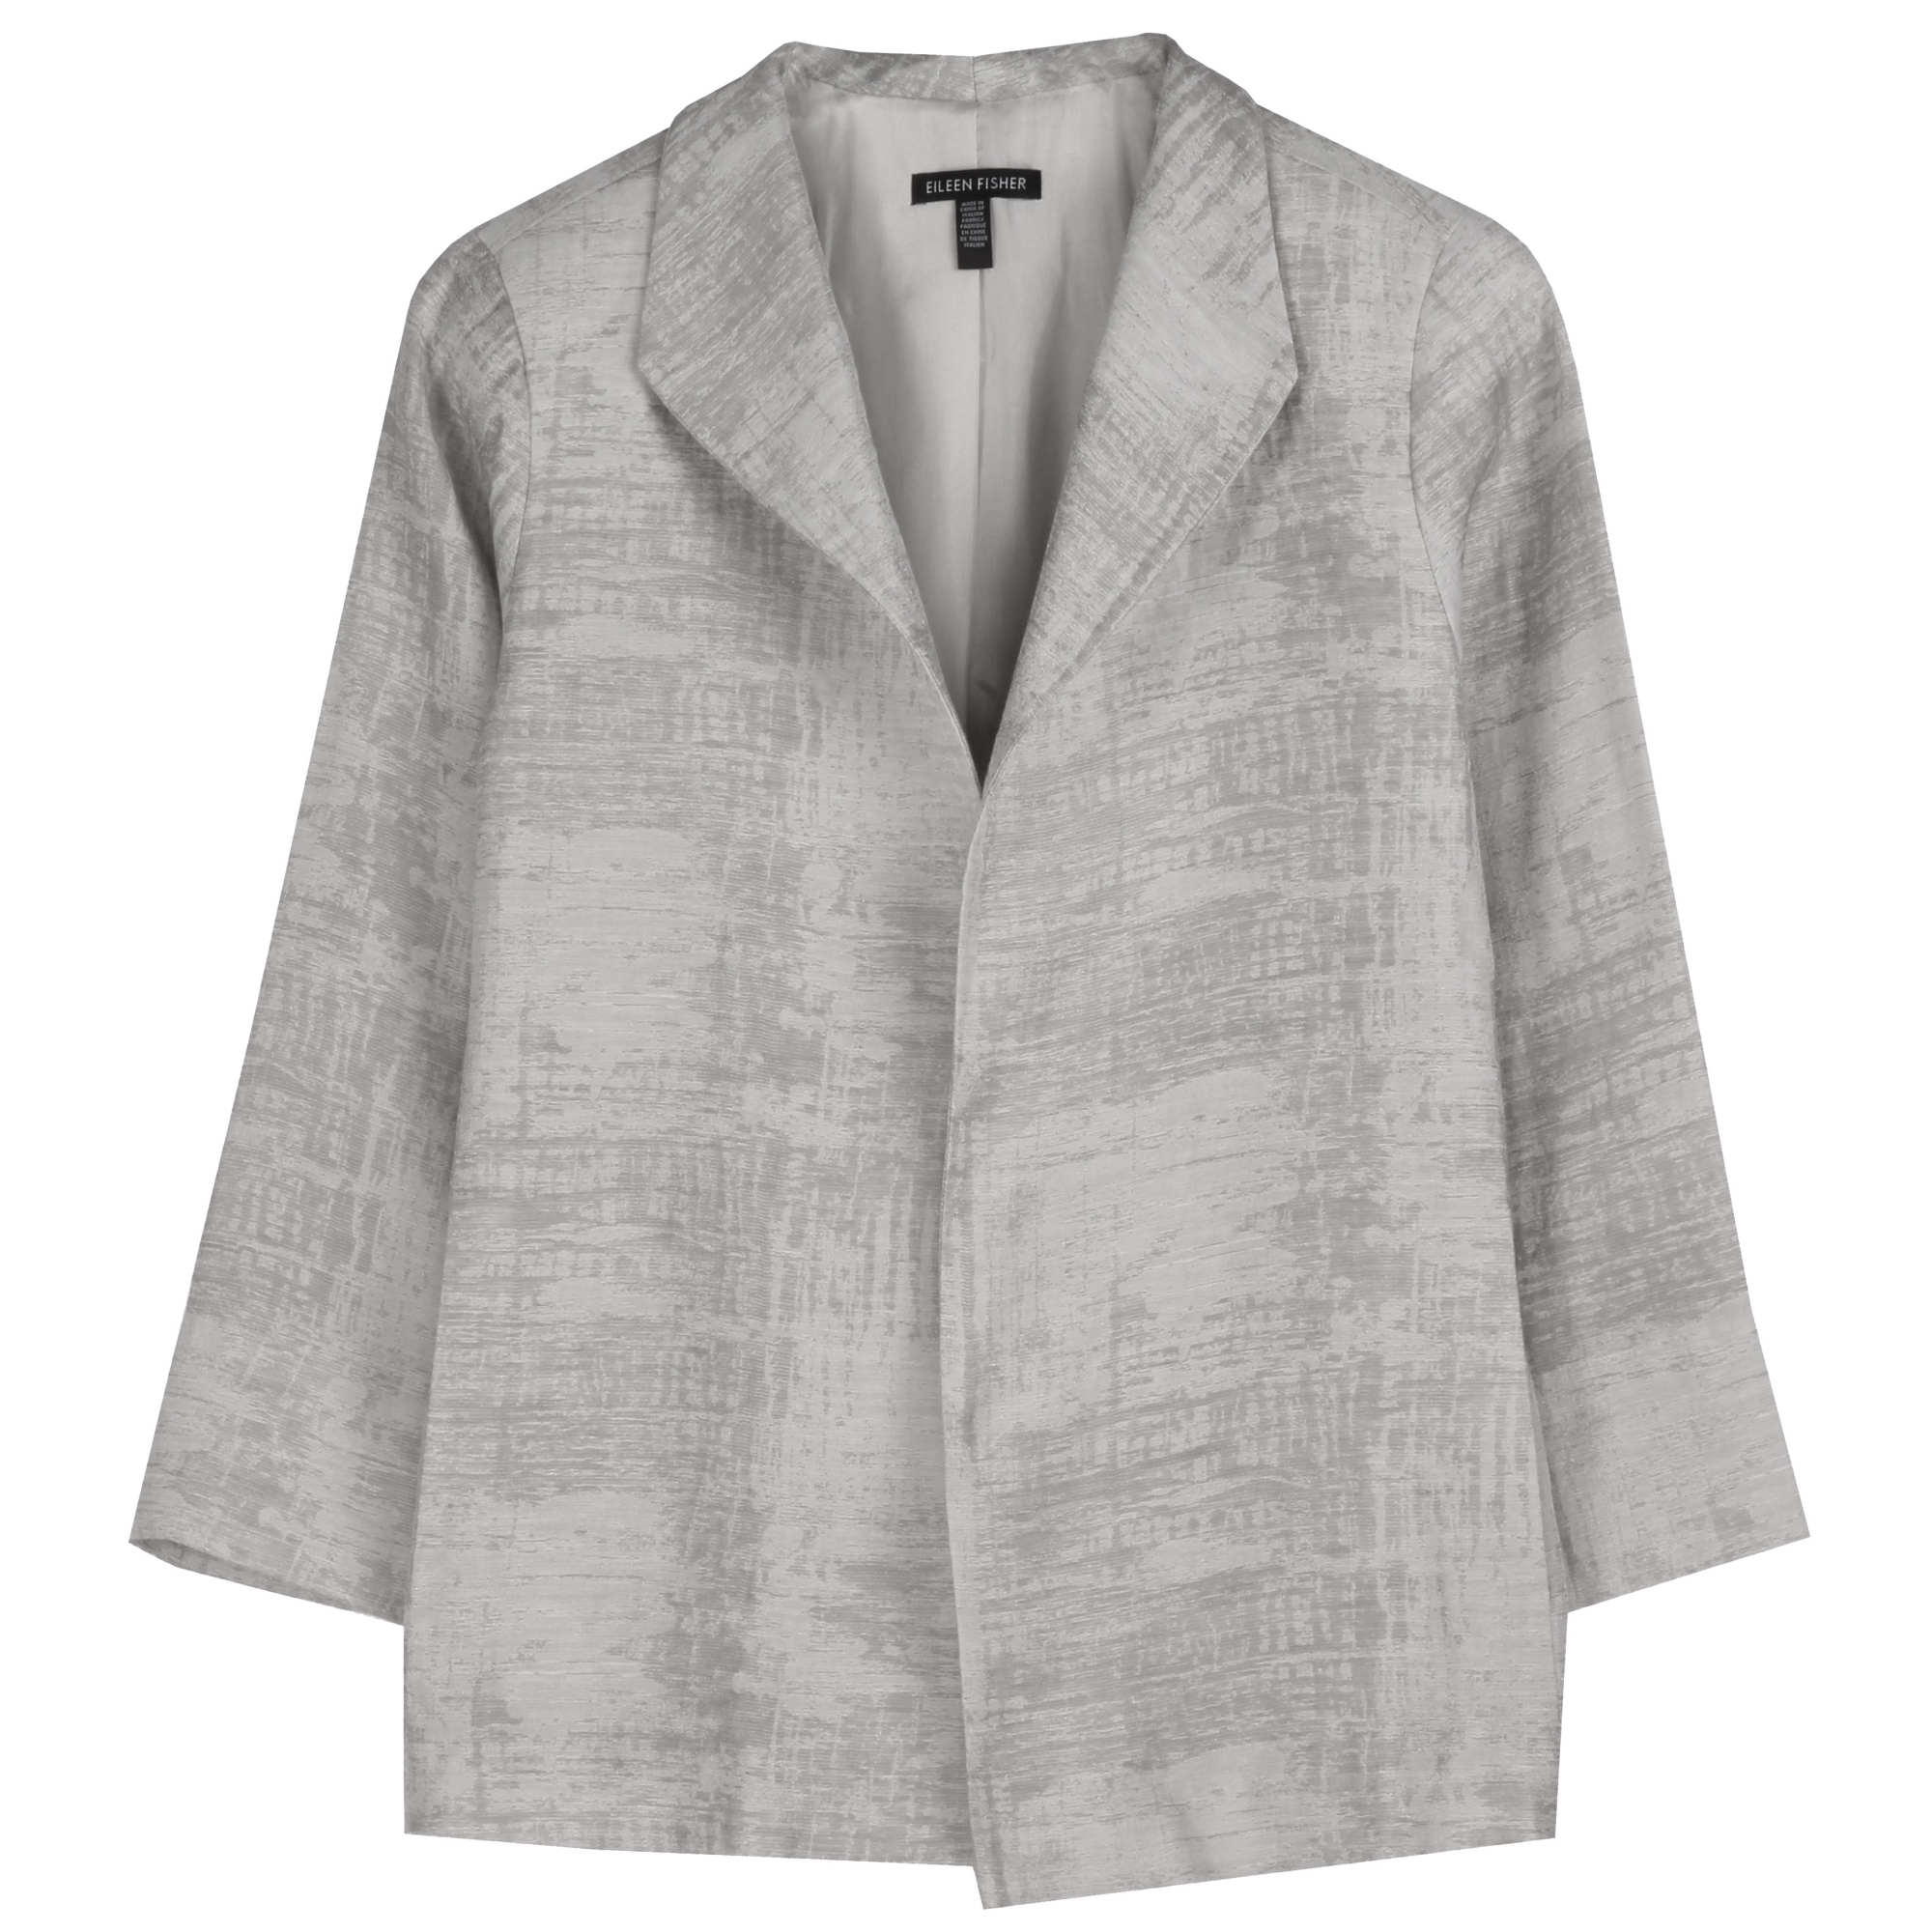 Luminous Cotton Linen Jacket